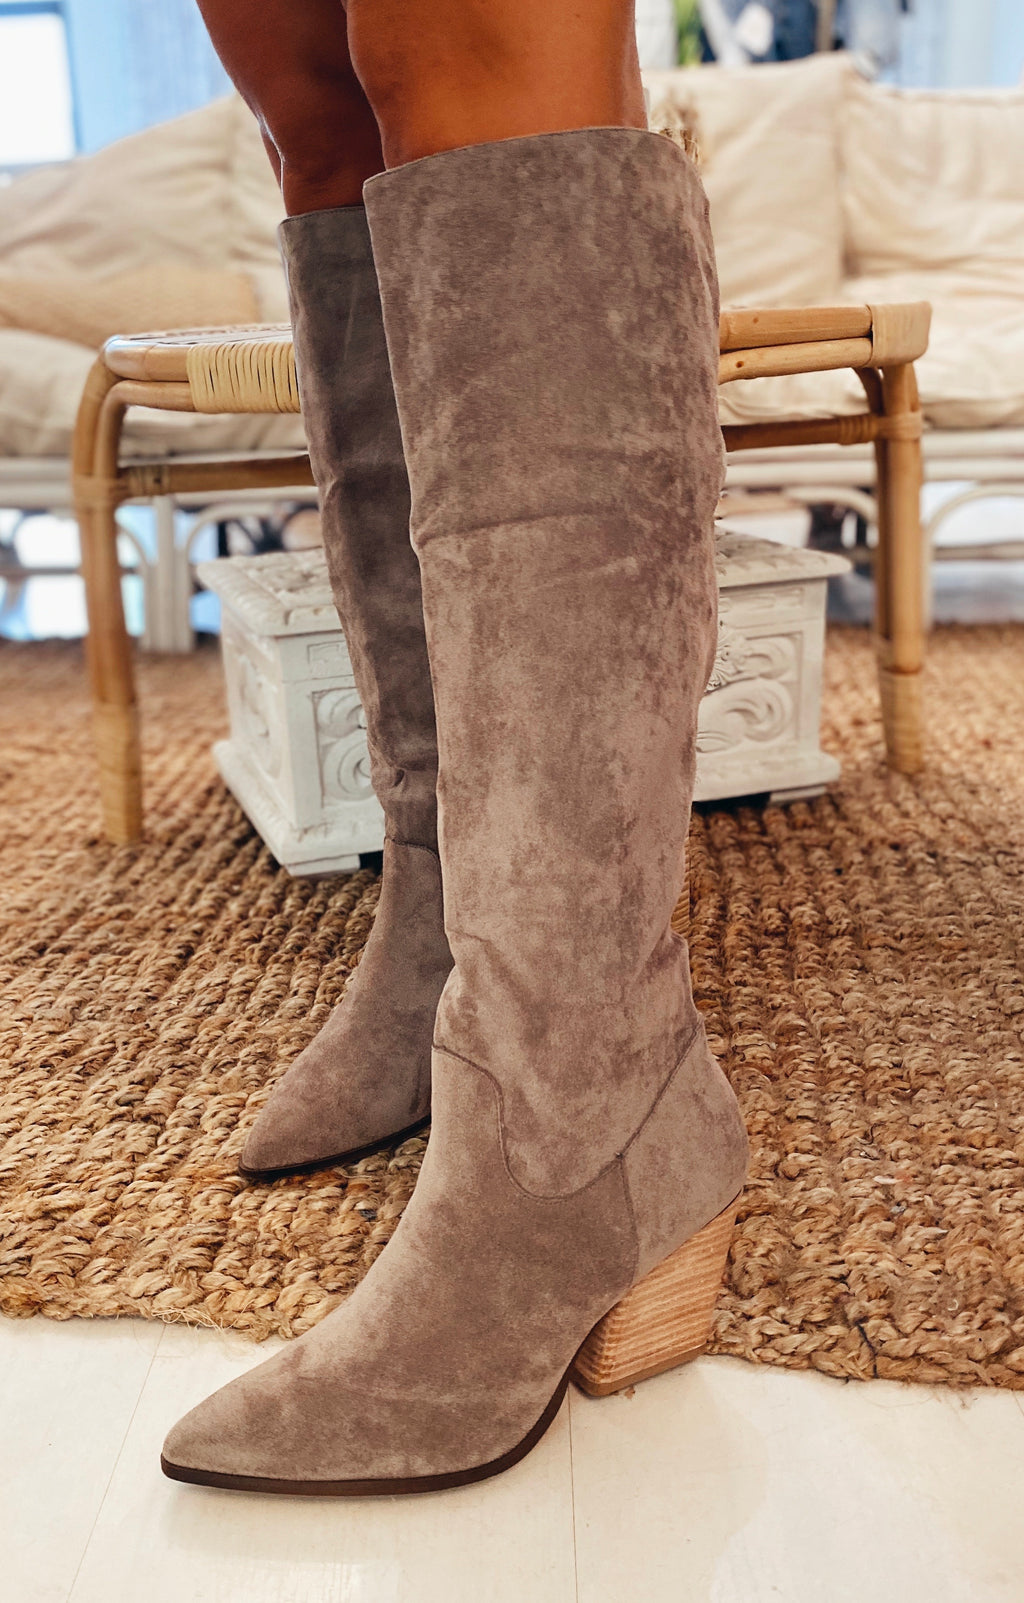 The Hillstone Knee High Boots